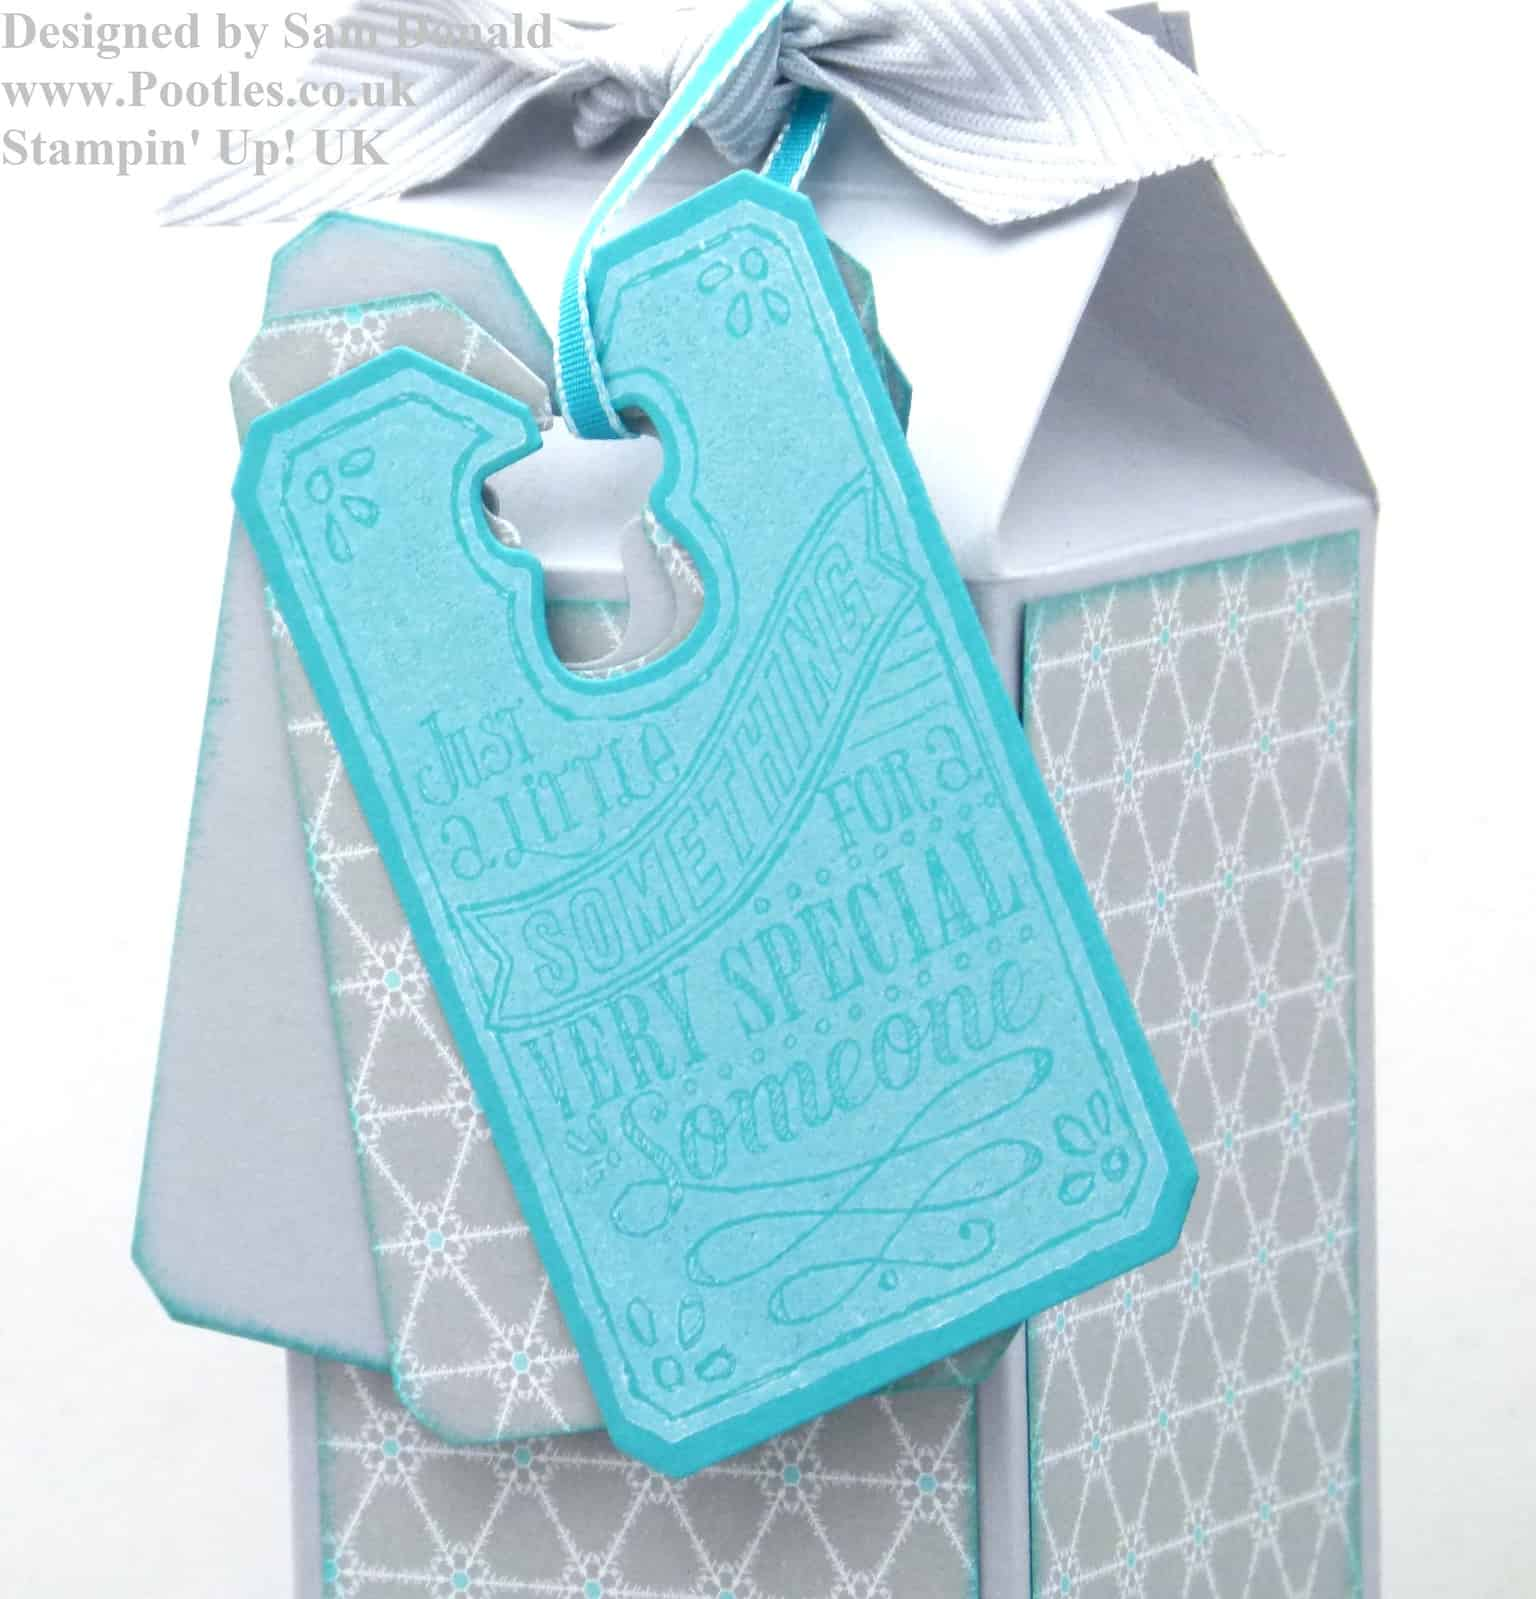 Pootles Stampin Up UK Champagne Box 4